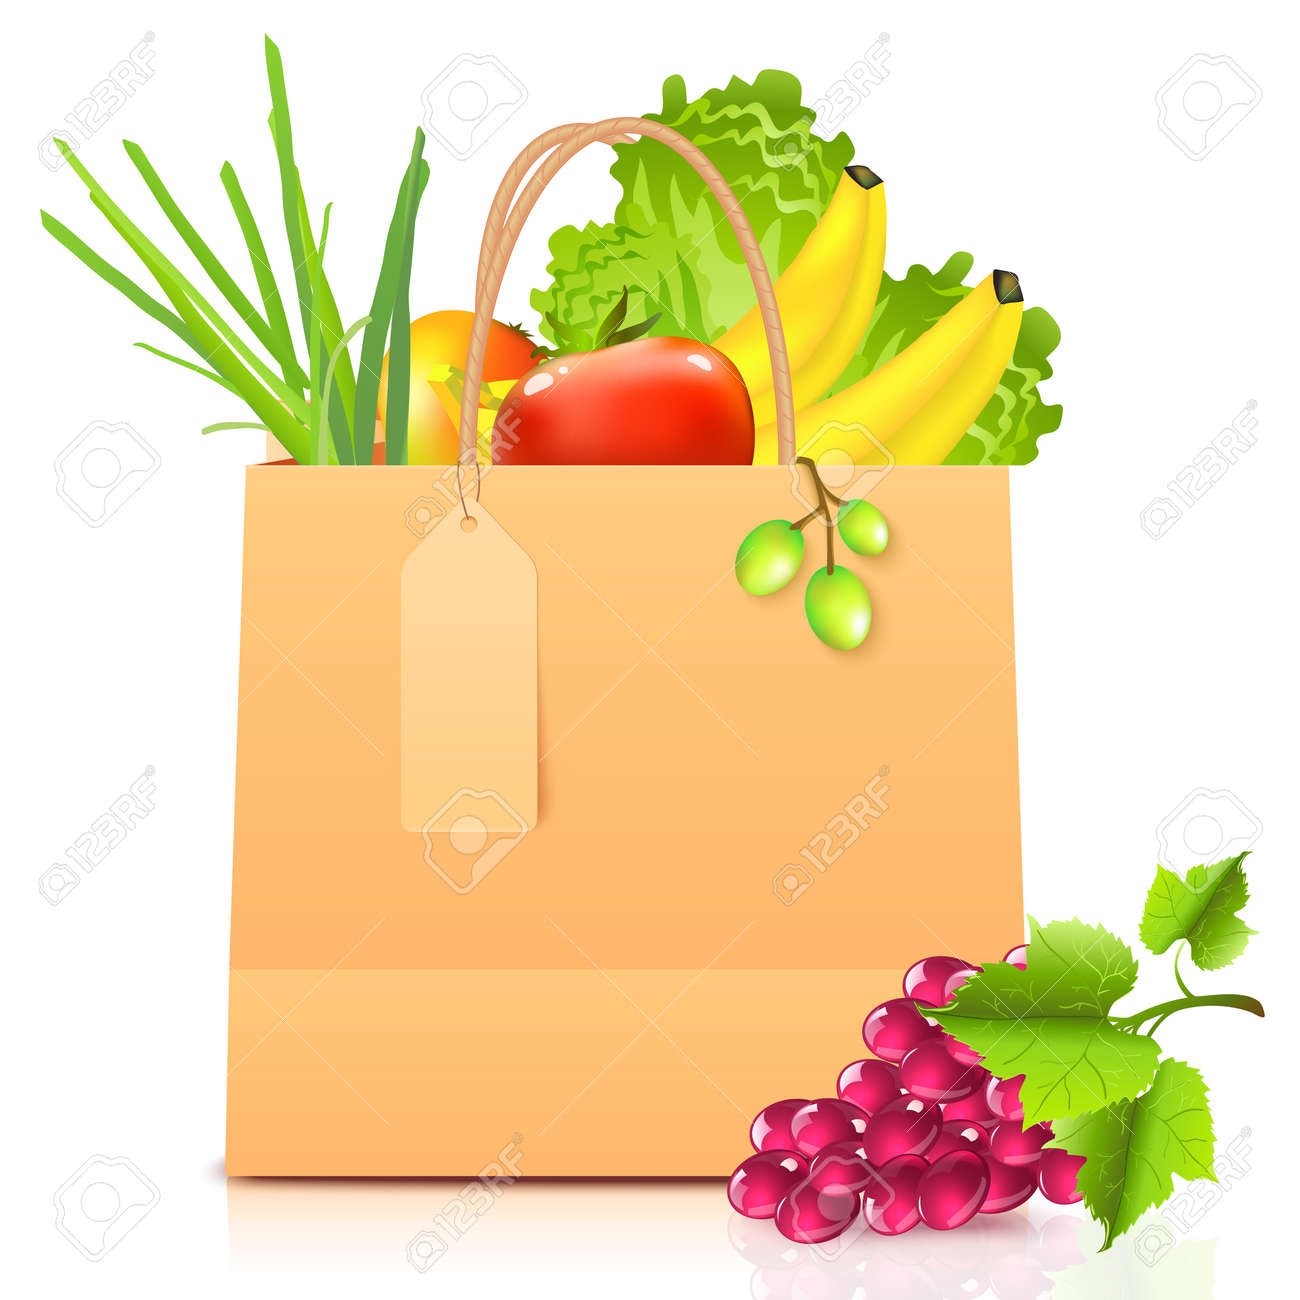 isolated paper bag with vegetables Stock Vector - 17540571